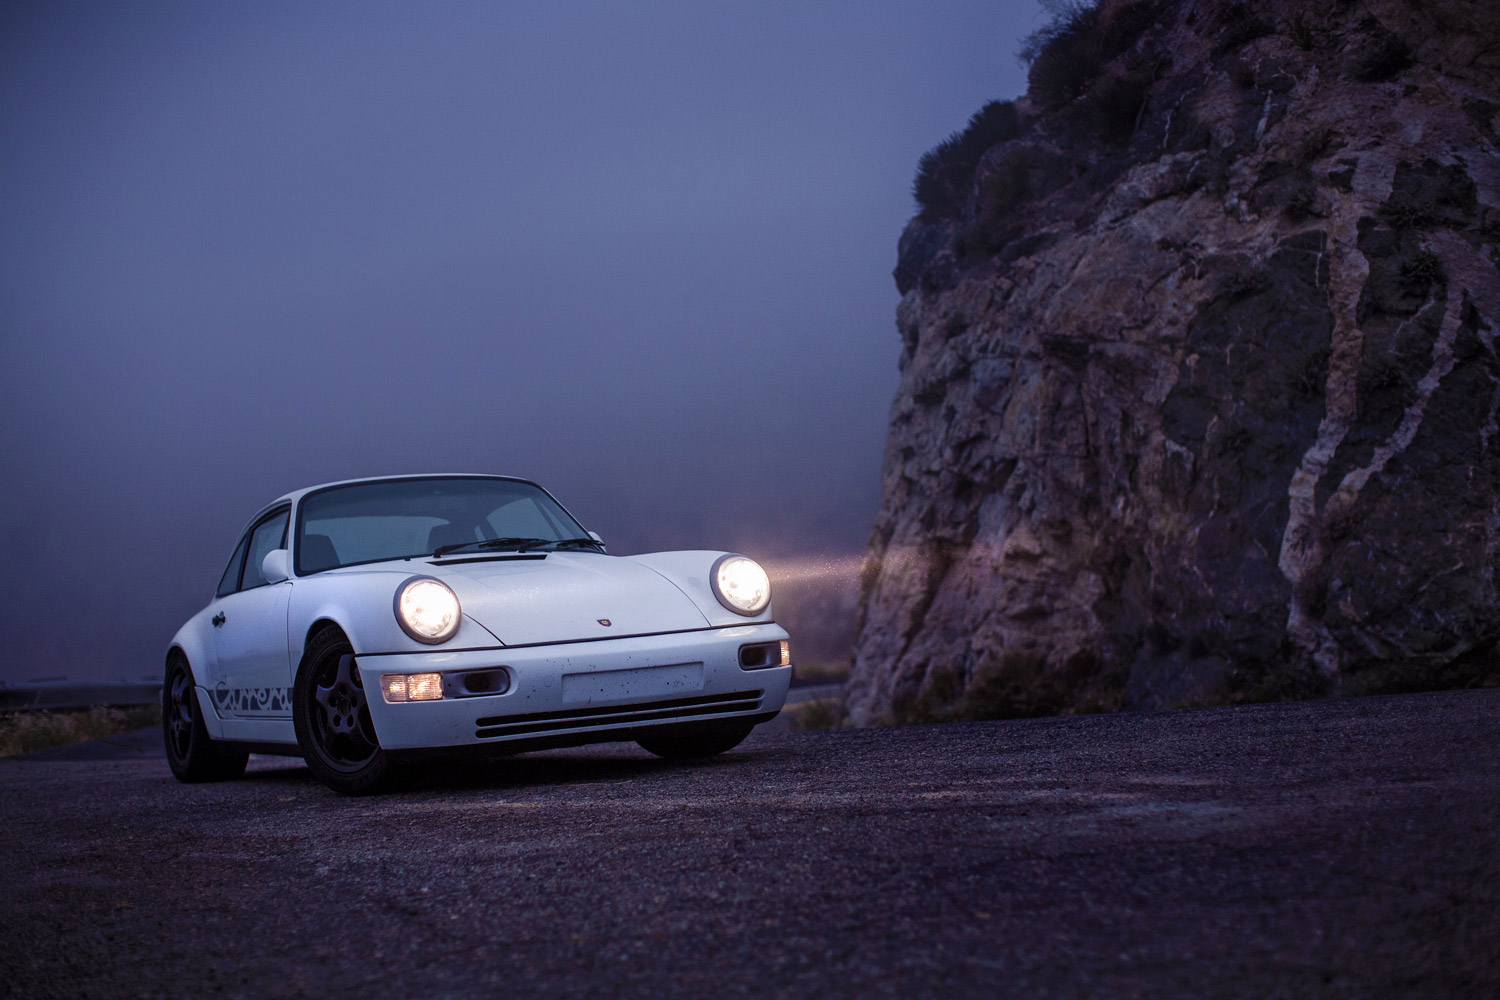 Driving This Porsche 964 Hot Rod Leaves No Room For Indifference Petrolicious